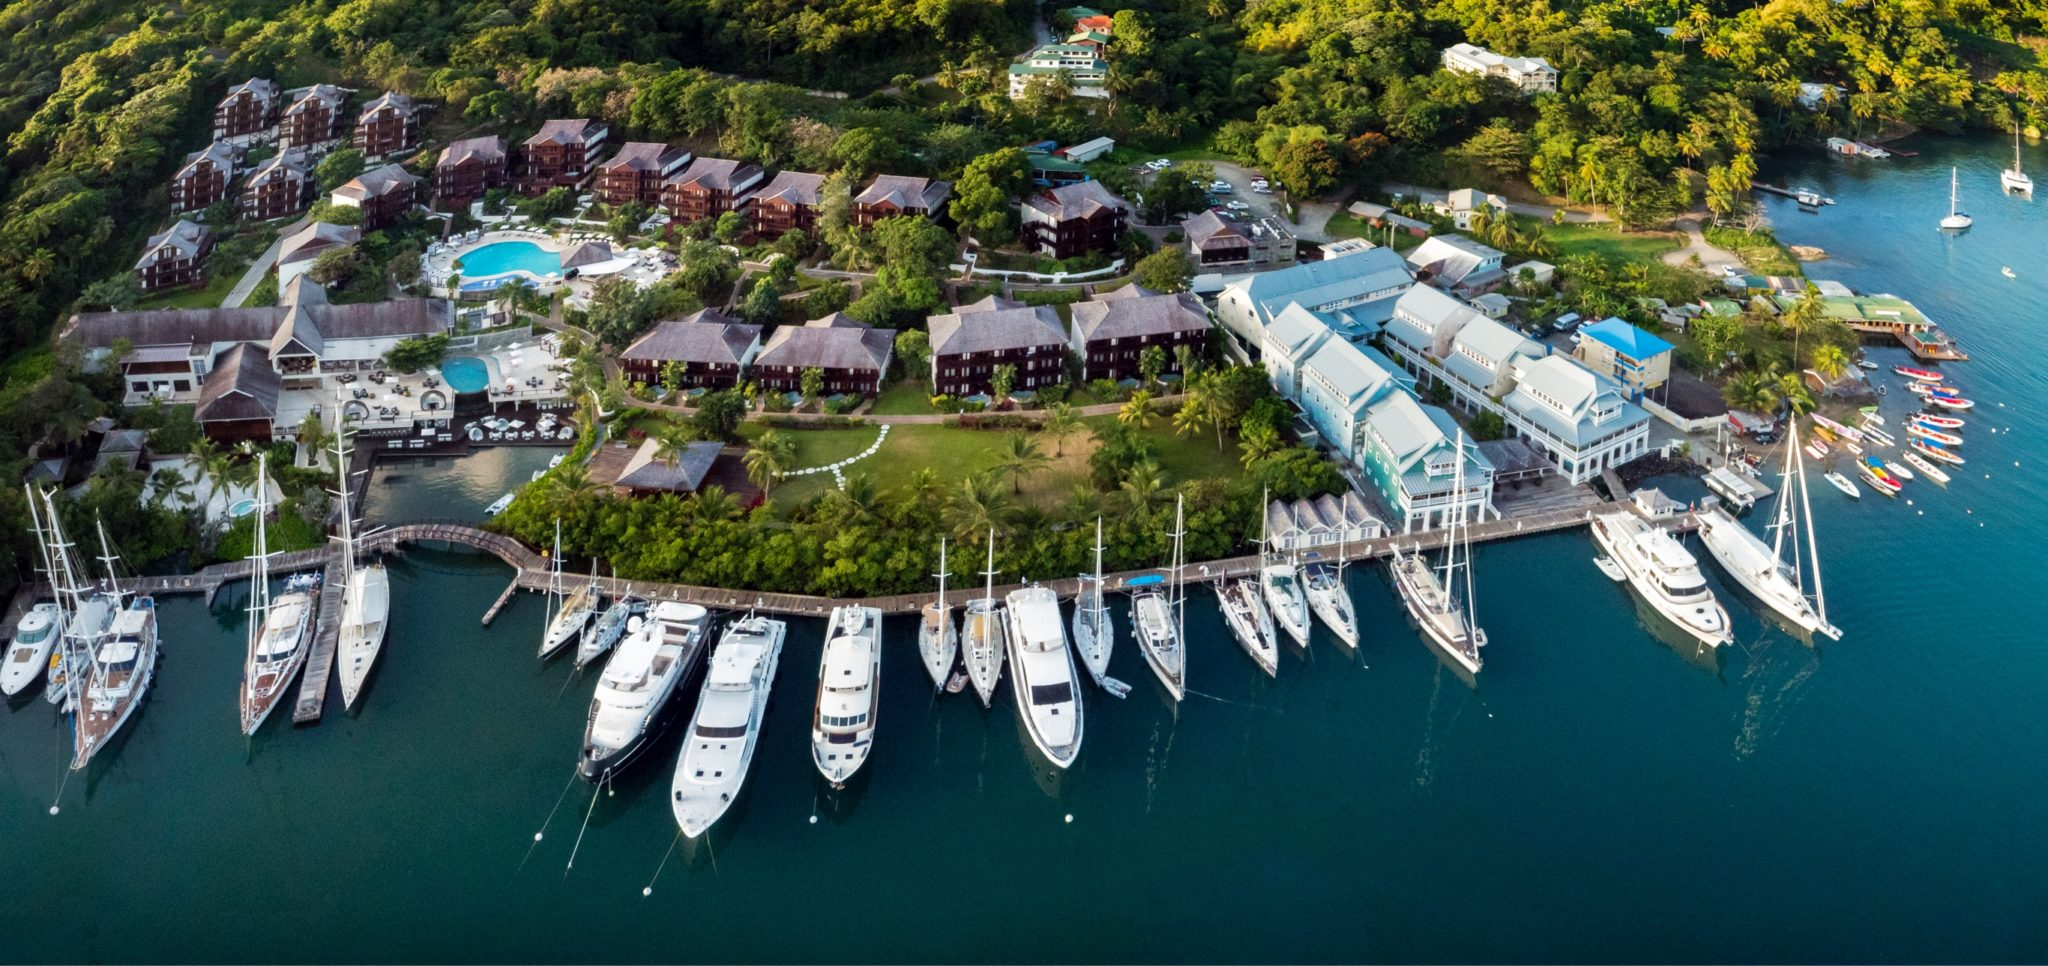 Capella Marina at Marigot Bay in Saint Lucia